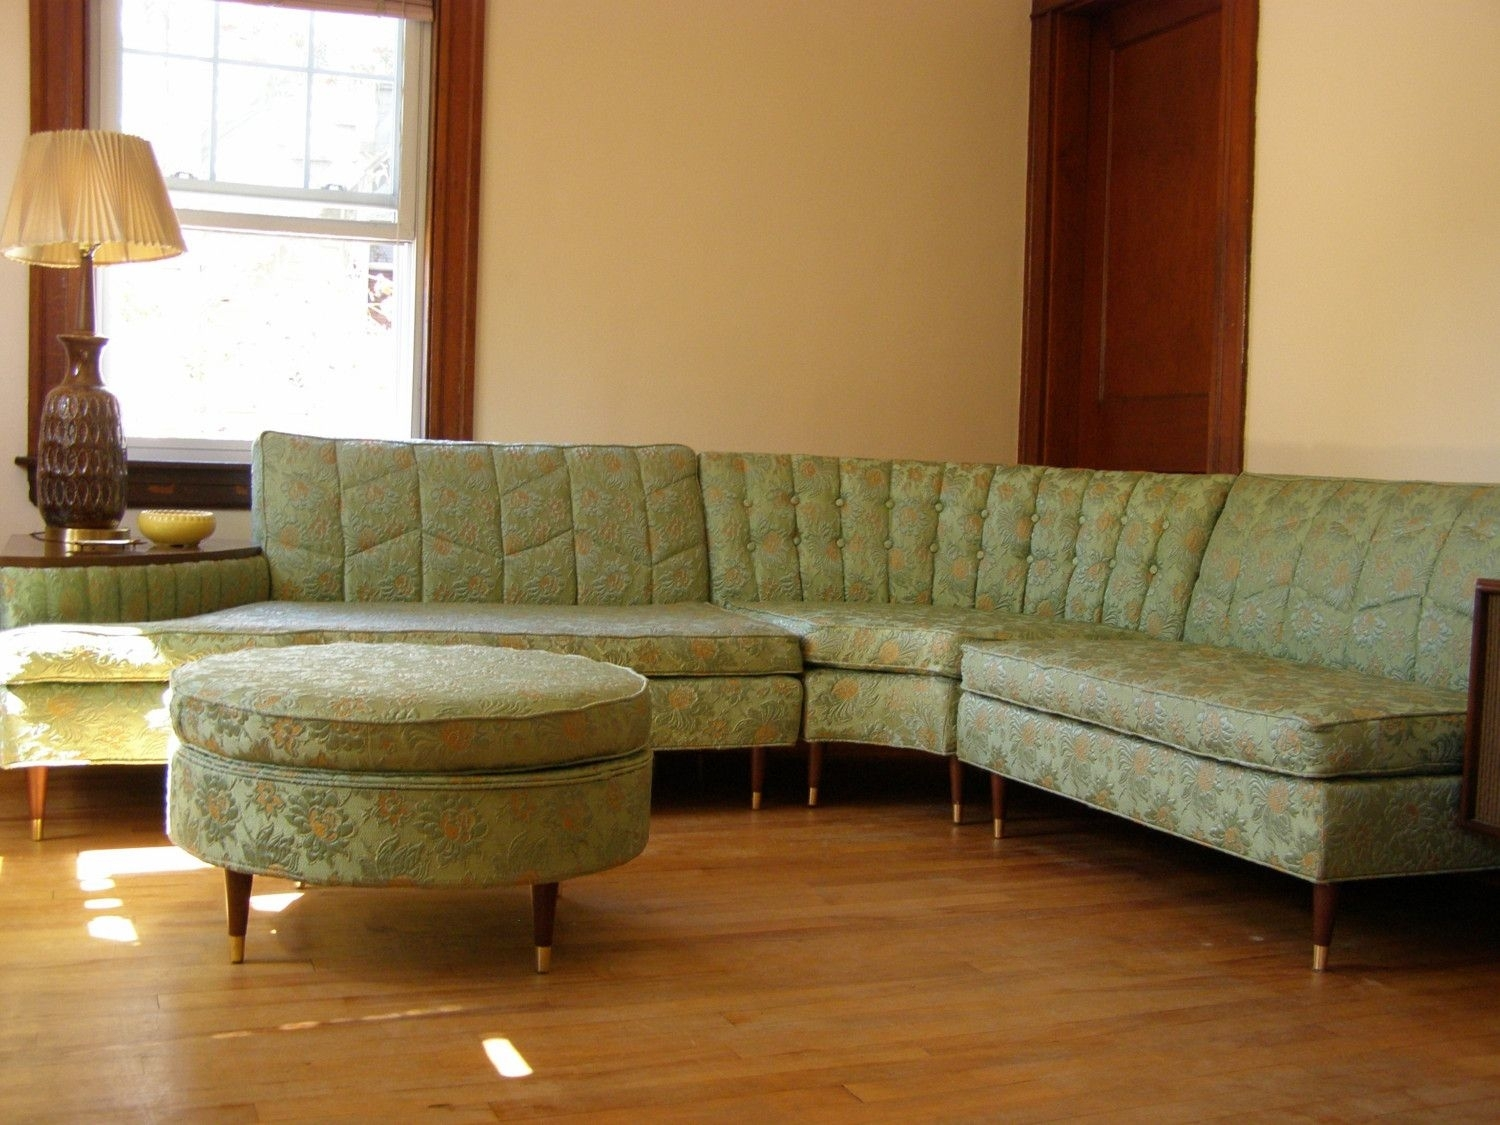 Retro Couches | New Years Sale Vintage Sectional Sofa With Built Throughout Vintage Sectional Sofas (Image 4 of 10)